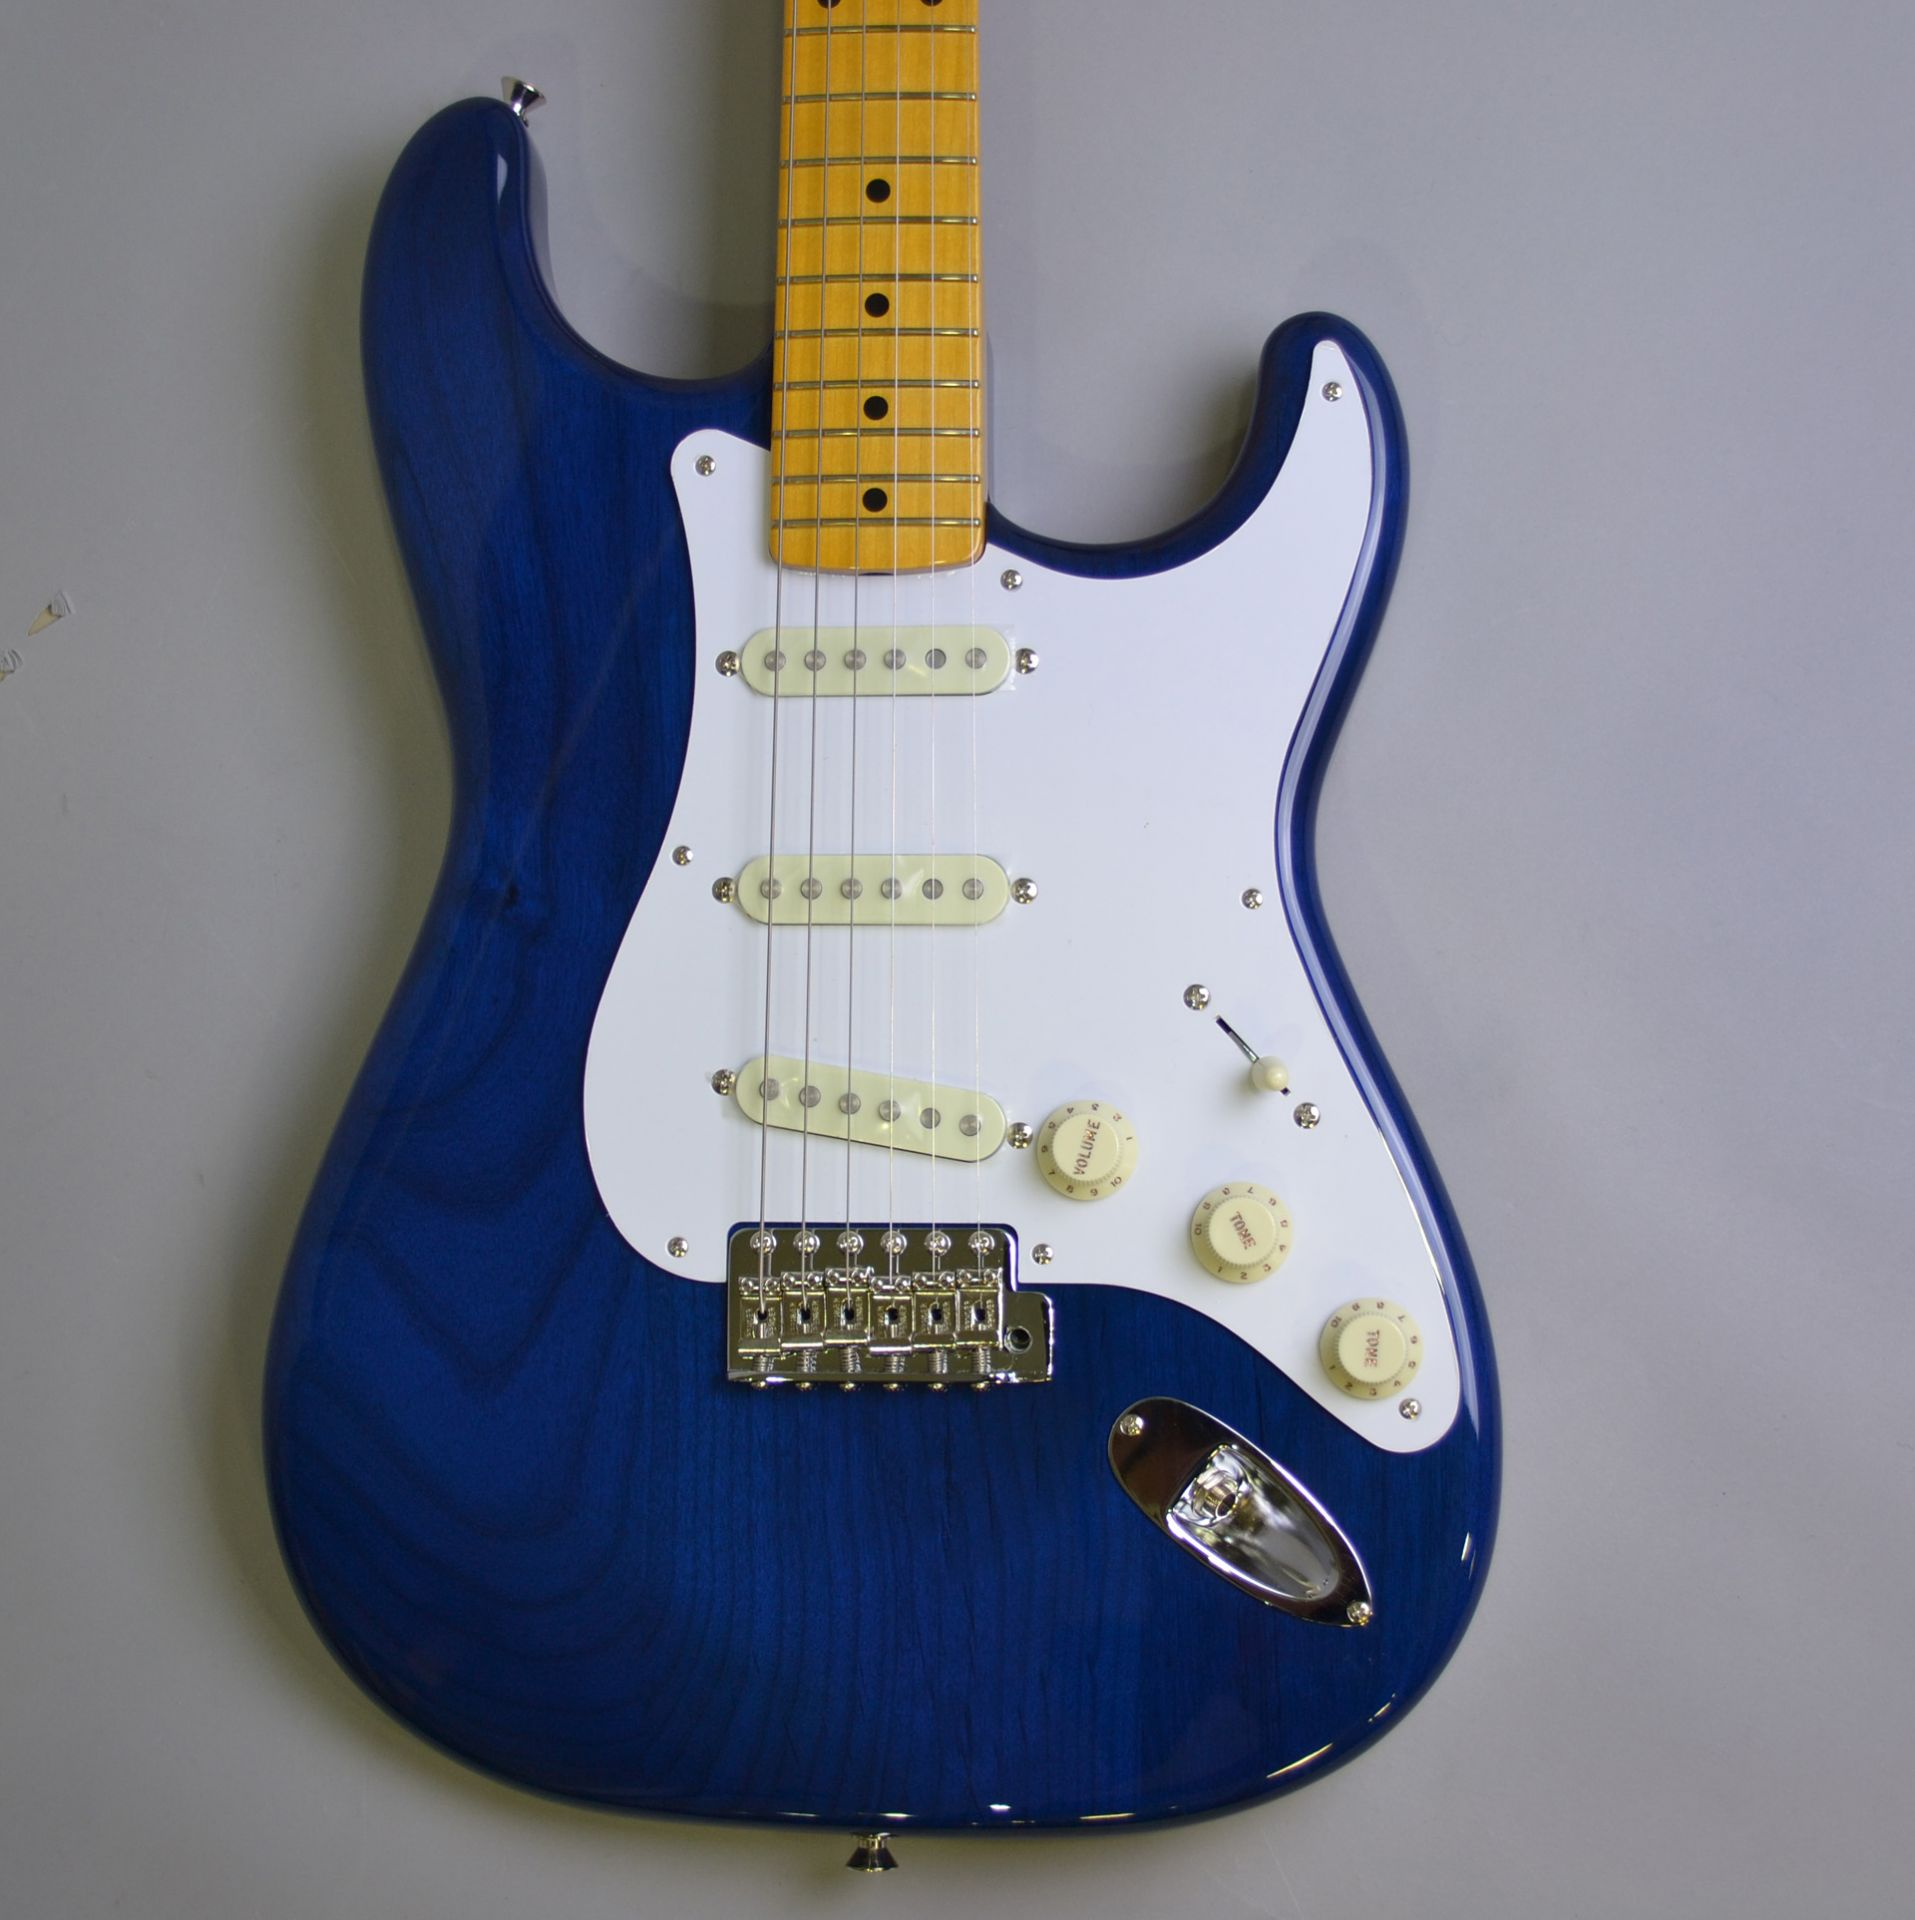 MADE IN JAPAN TRADITIONAL 58 STRATOCASTERのヘッド裏-アップ画像